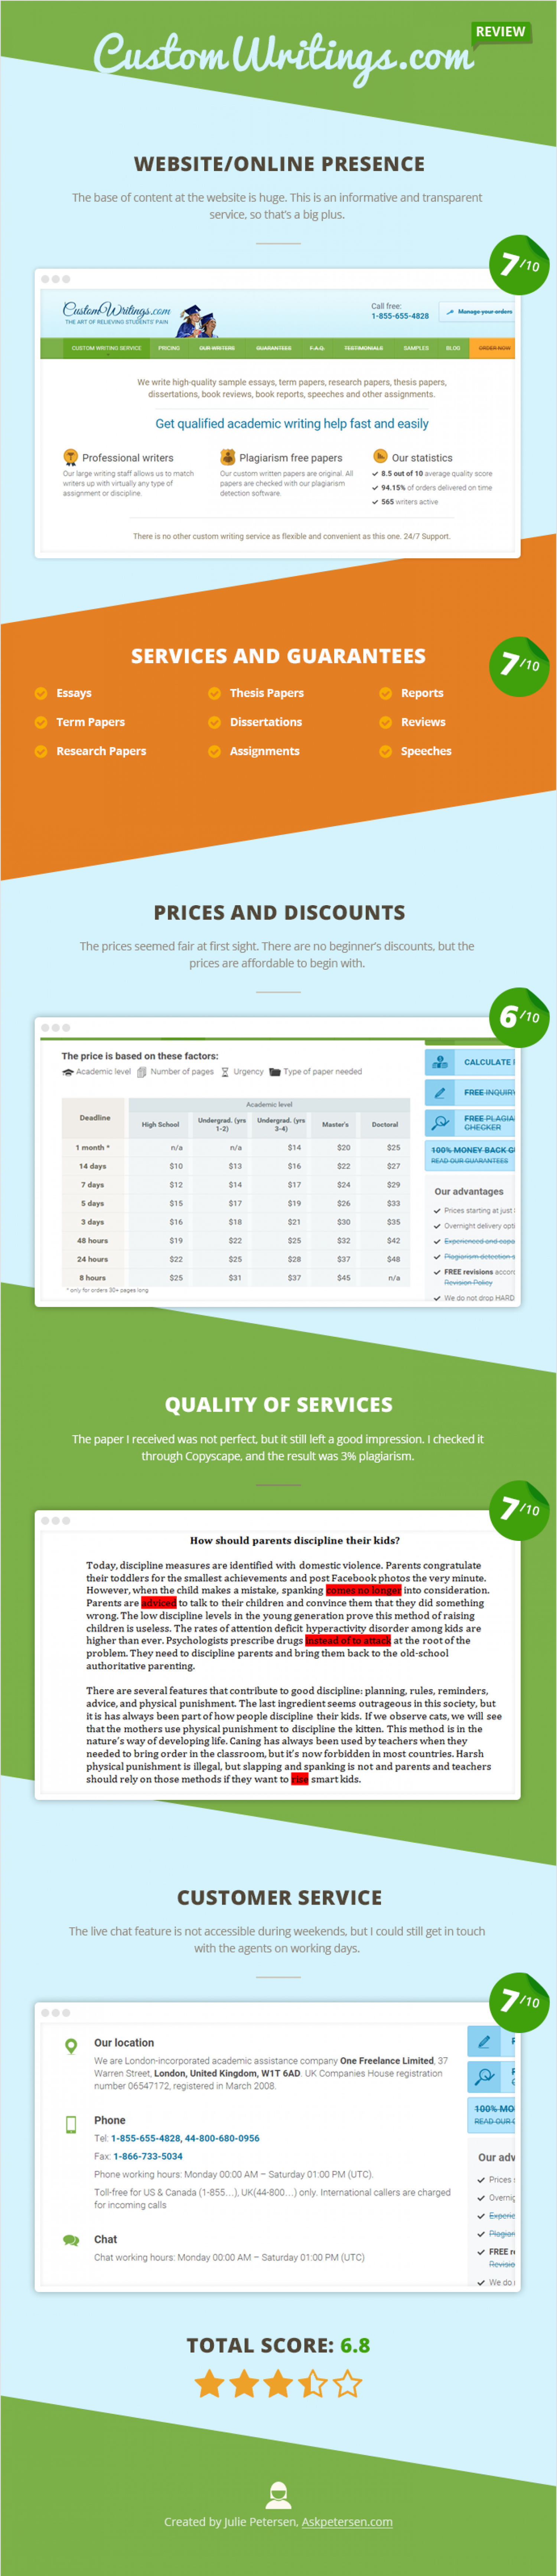 CustomWritings.com Review Infographic